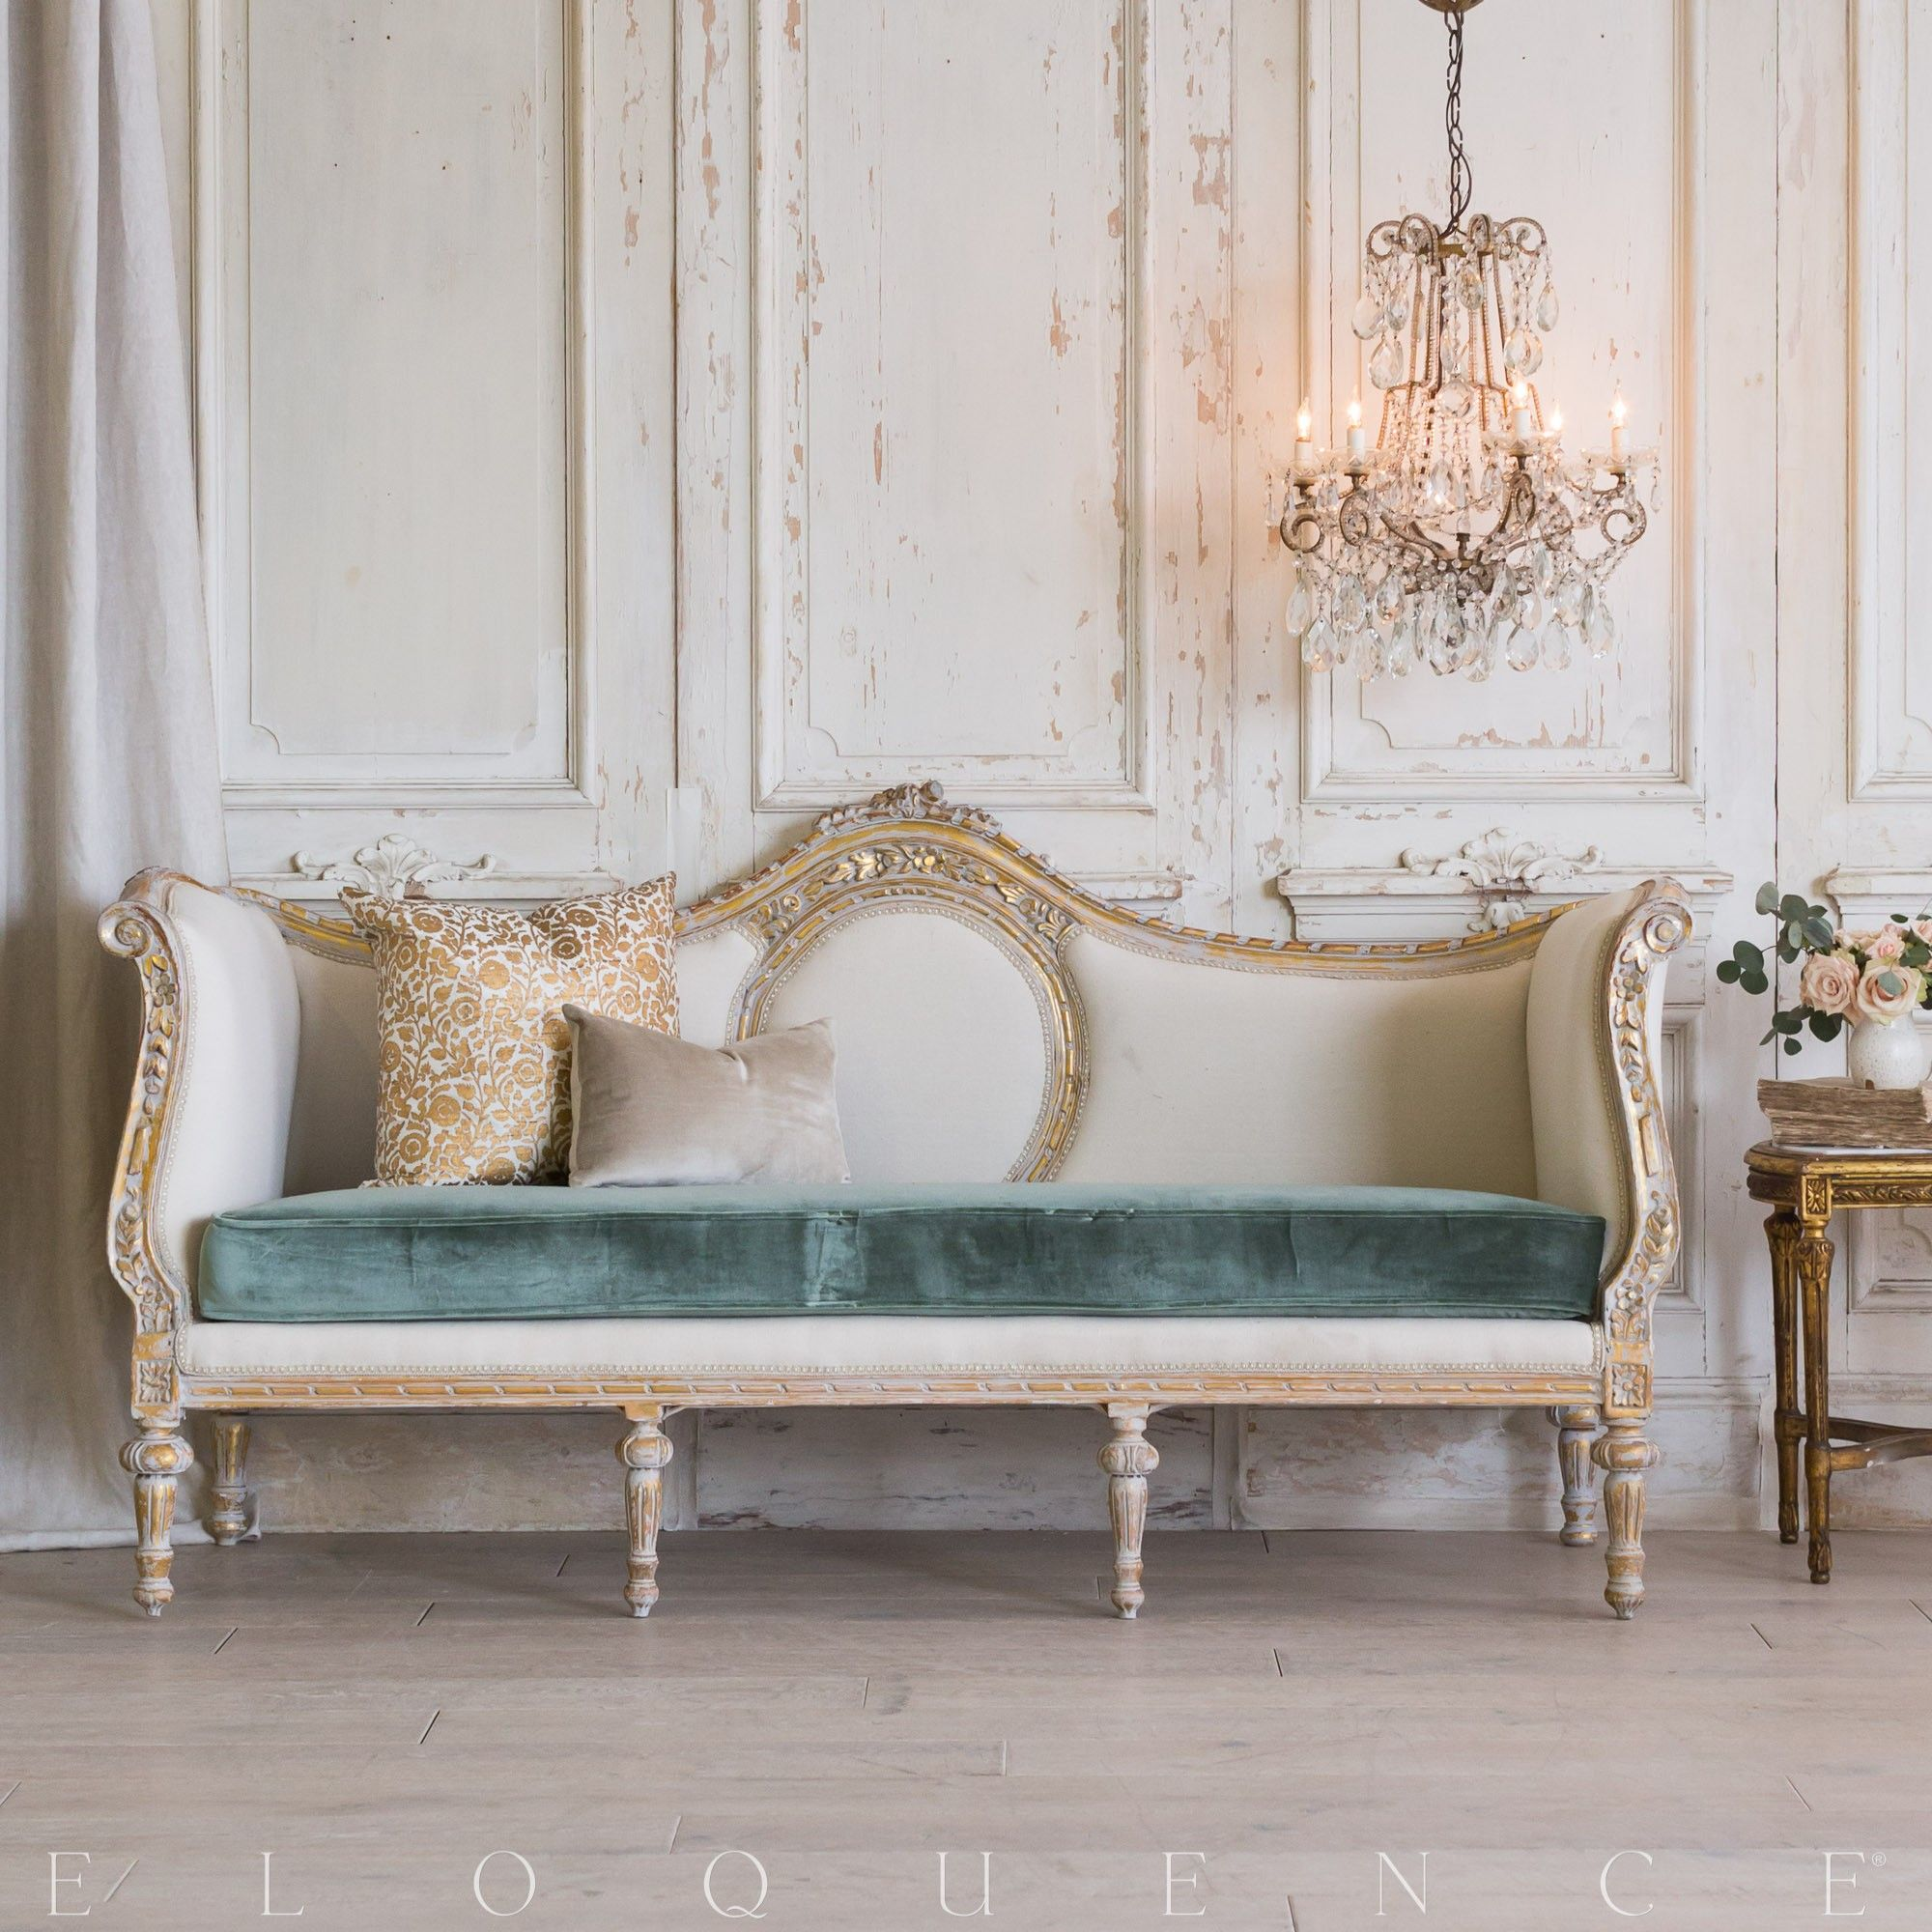 An Absolutely Stunning Daybed In A Bright Washed Gilt Lovely Floral Carvings Adorn The Frame And The Beau Luxury Living Room Design Sofa Design Bedroom Decor